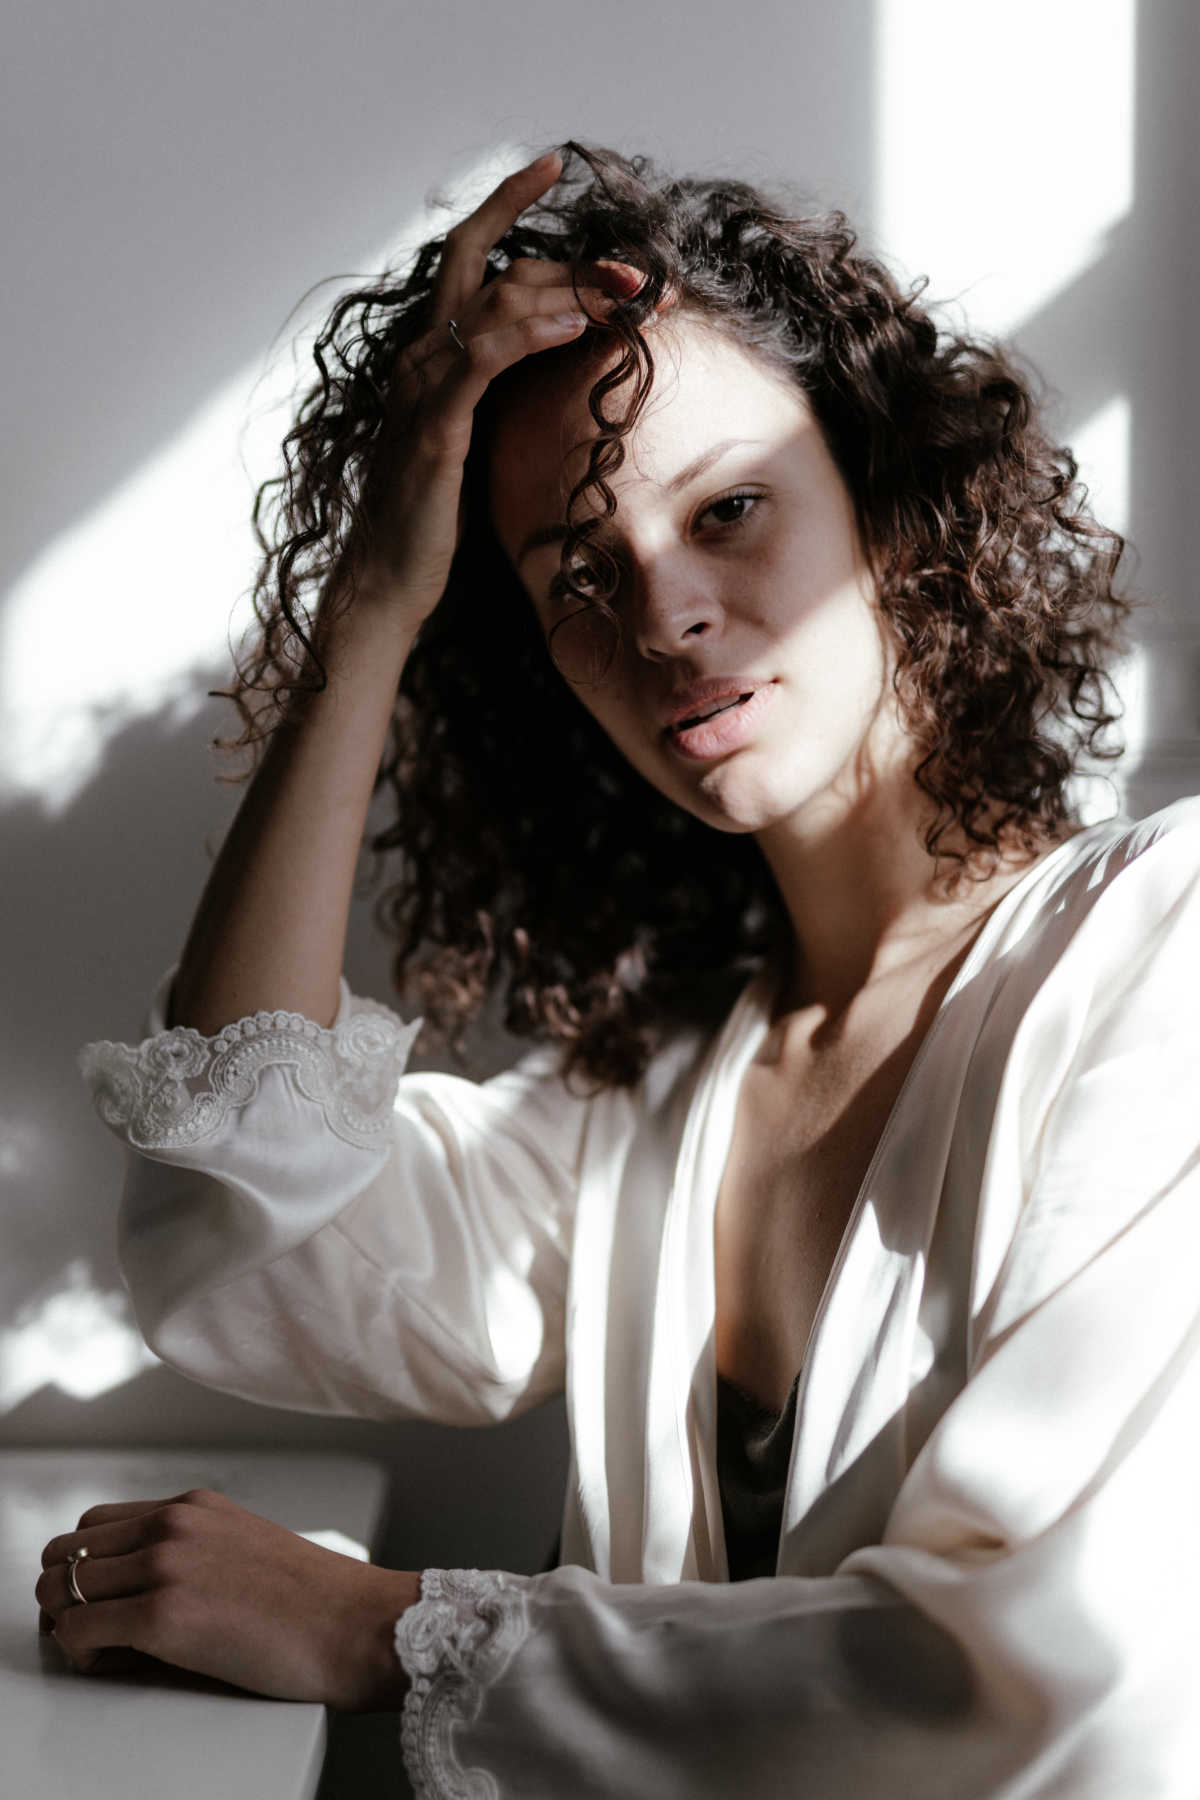 Young woman with curly hair sits by a table. Light from a nearby window casts strong shadows in her face.